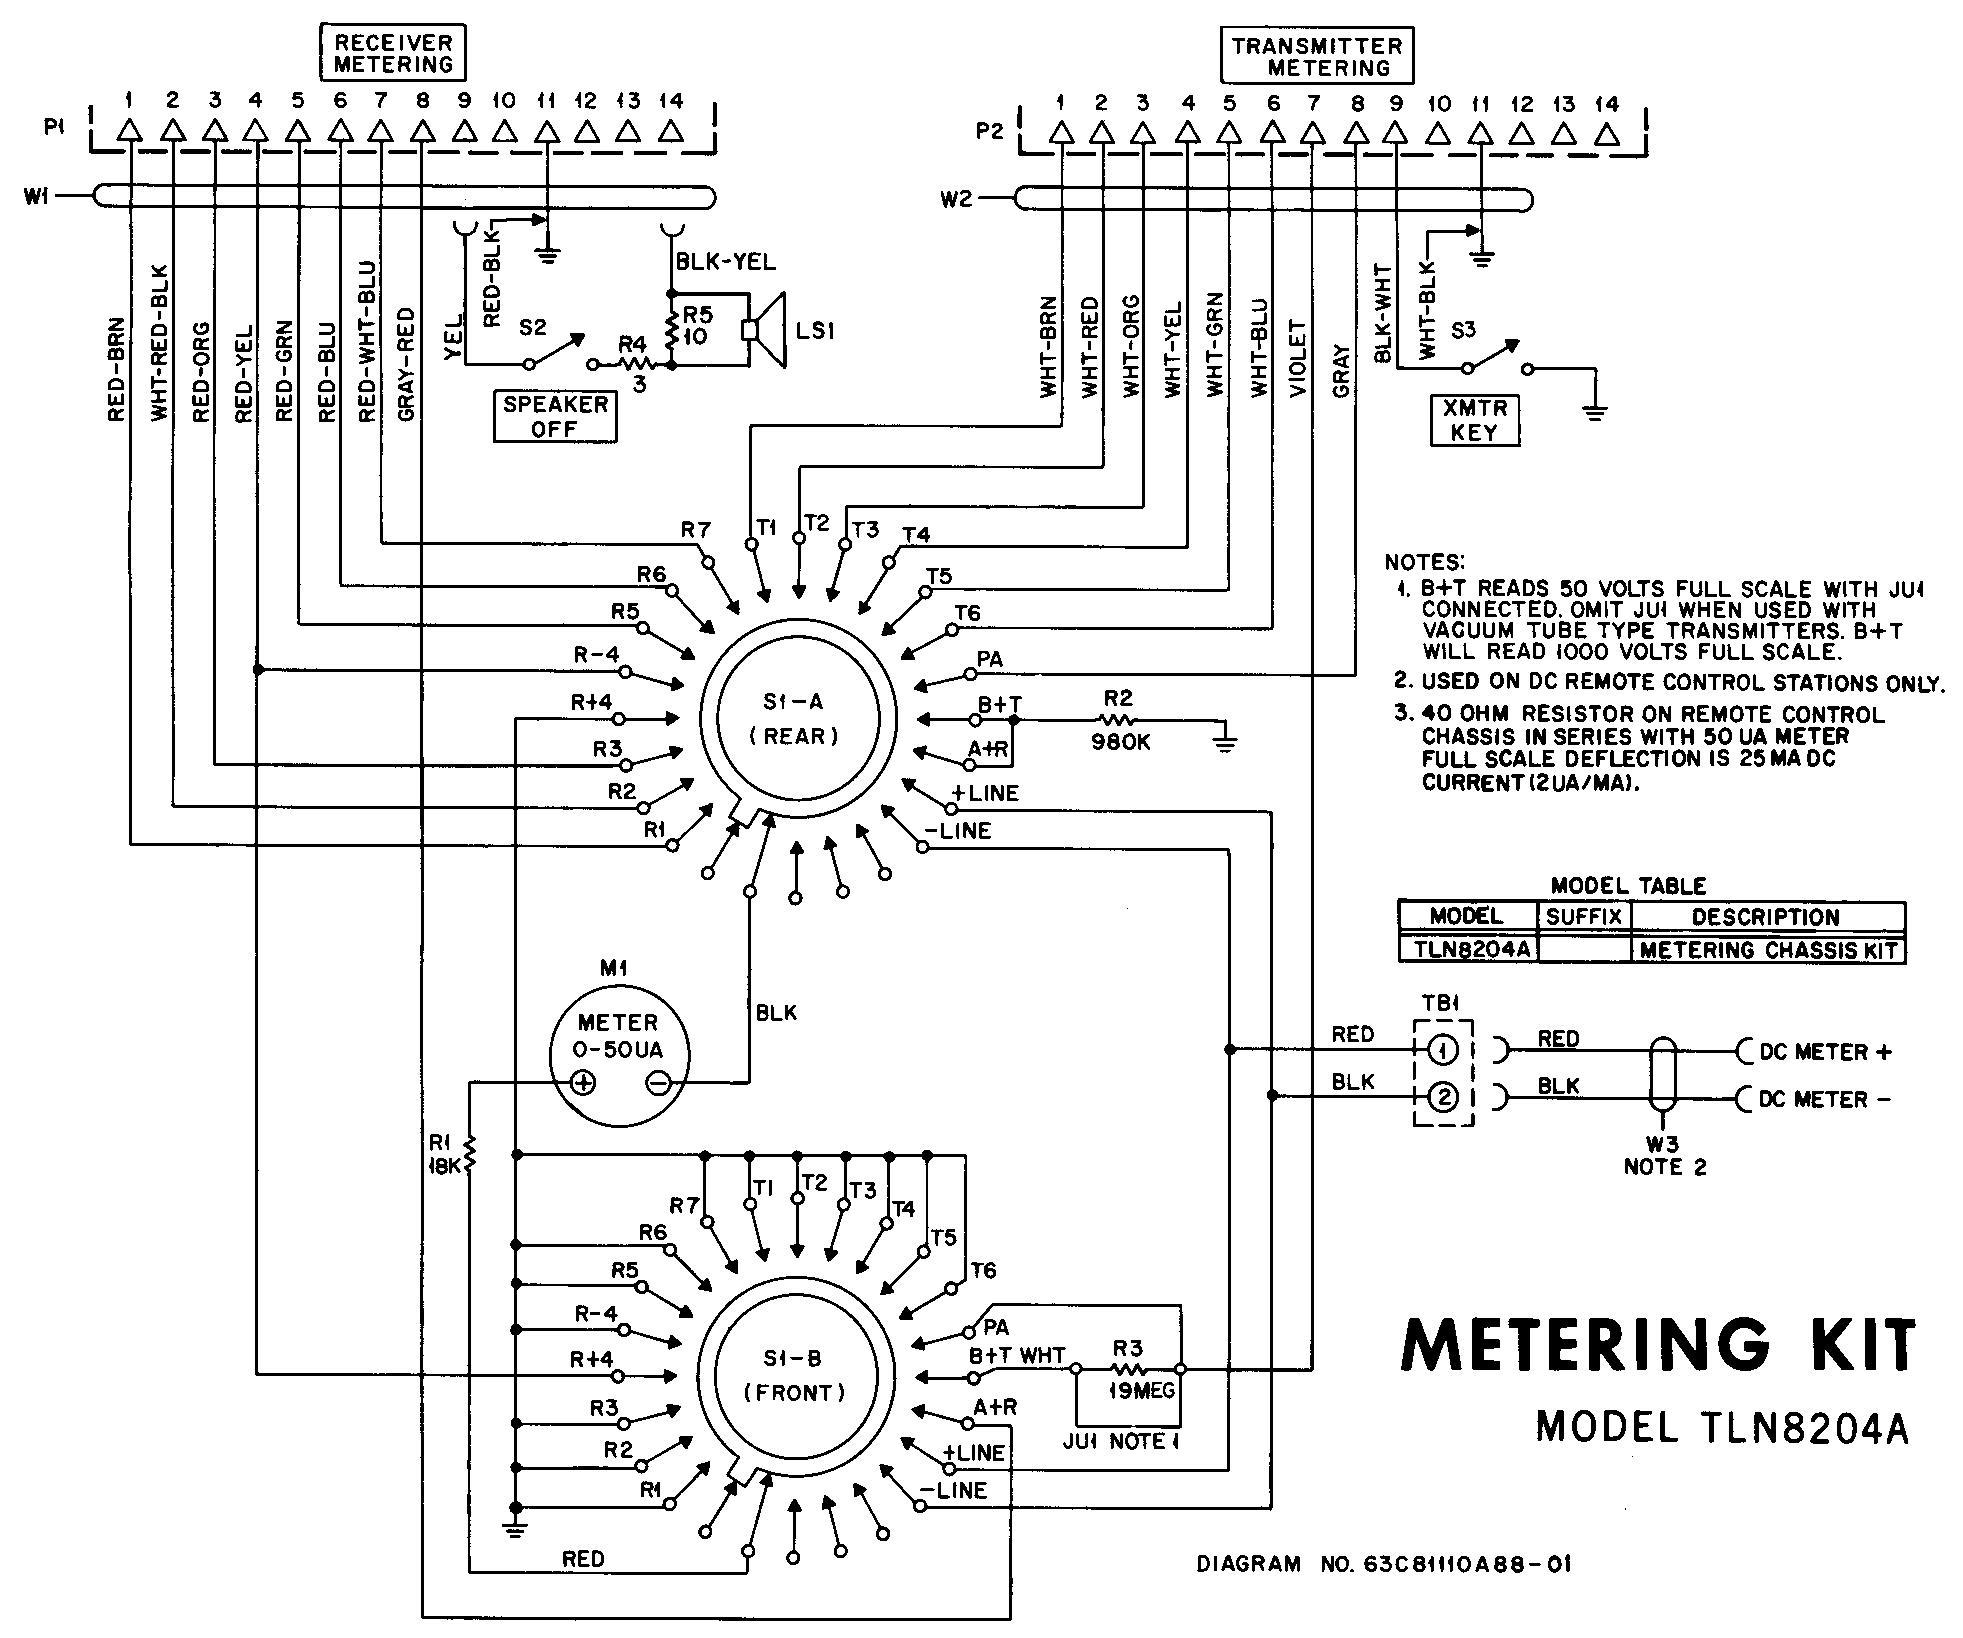 1975 Gm Fuse Box. Gm. Wiring Diagram Images